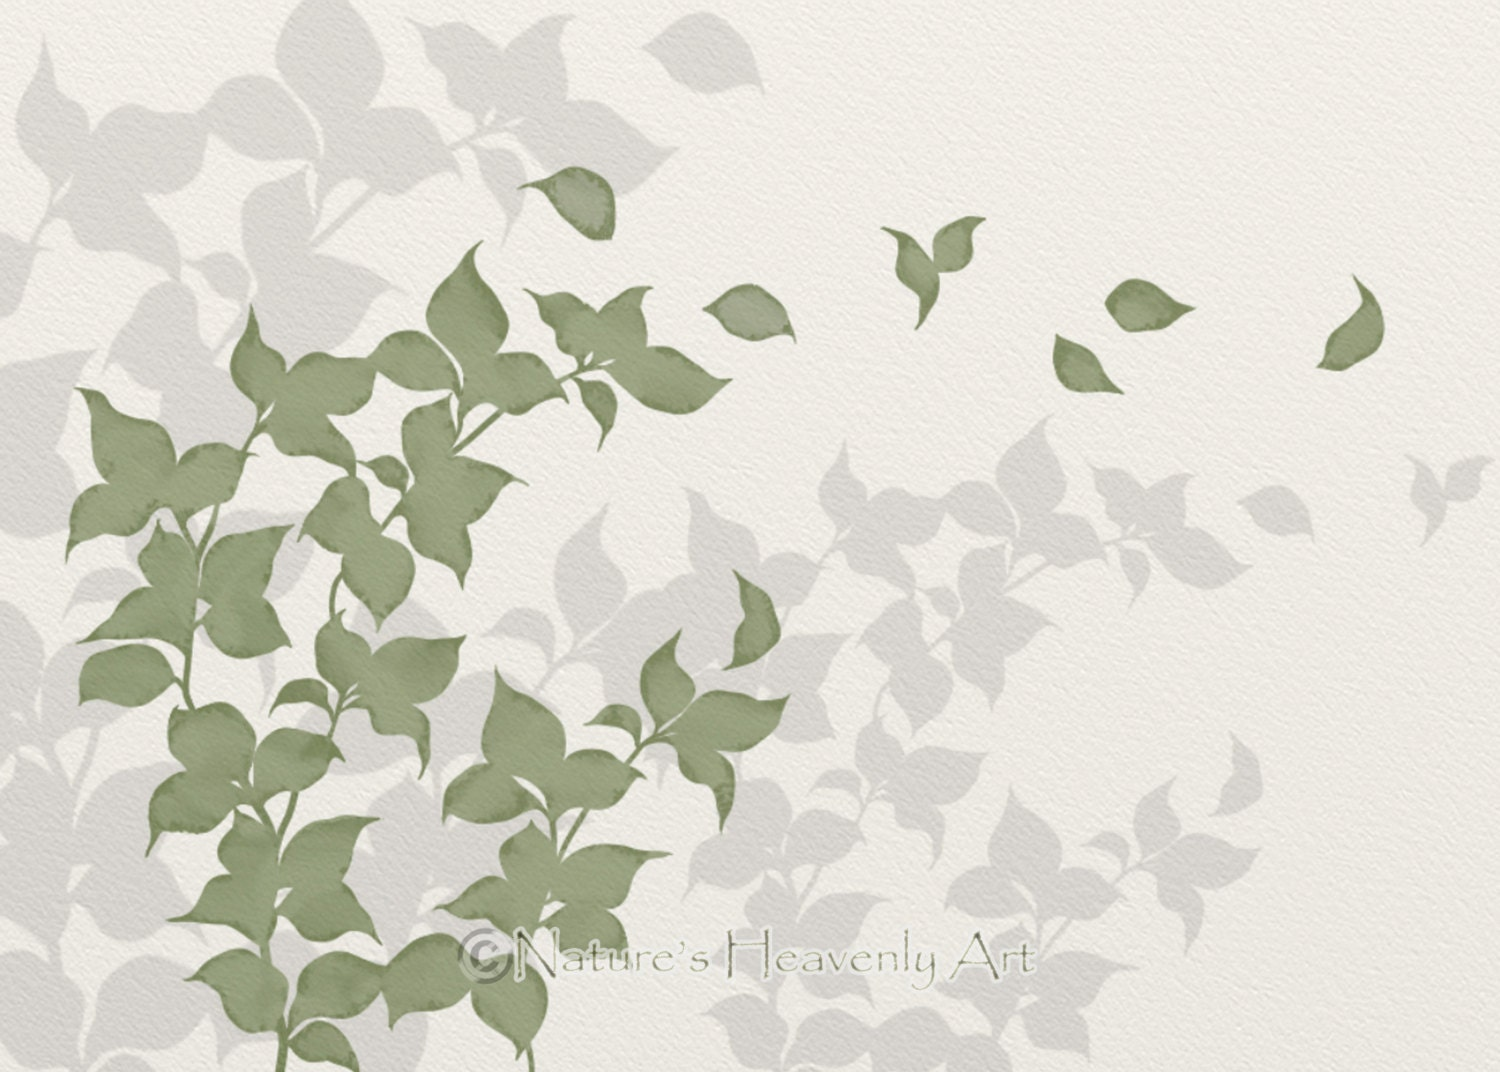 Wall Art Of Leaves : Green leaf wall art print nature inspired home decor